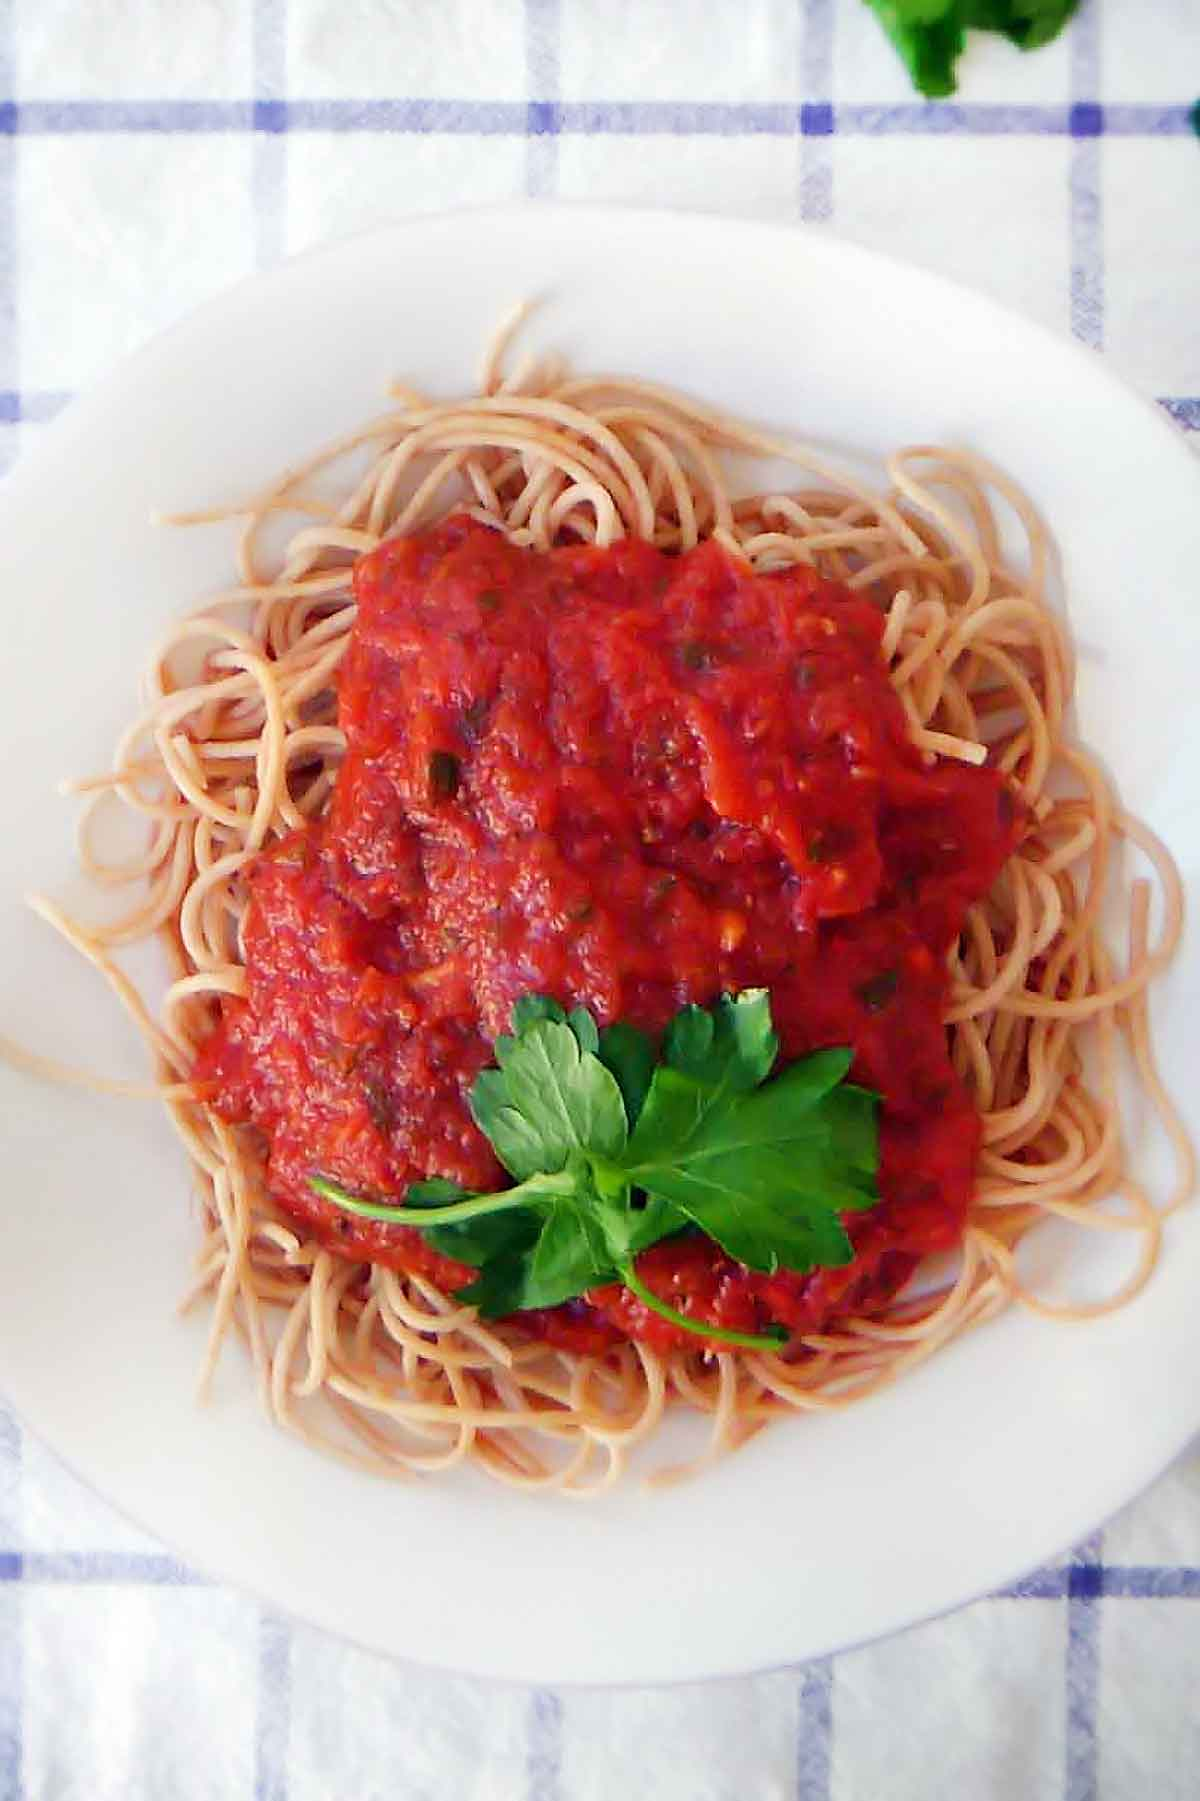 Top down view of pasta with marinara sauce white plate on blue and white checkered tablecloth, sprinkled with torn basil.